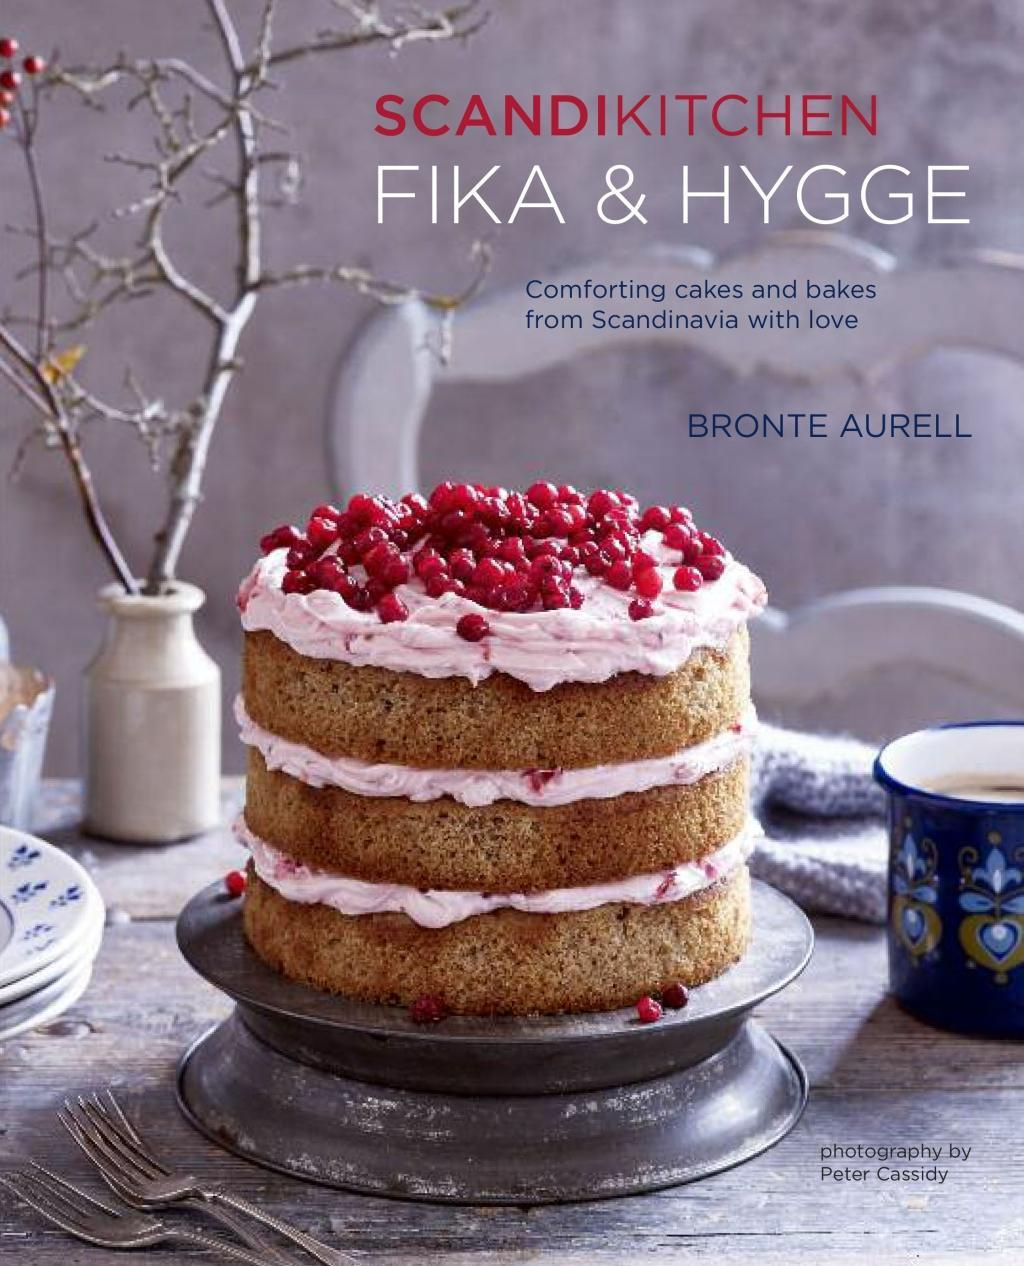 ScandiKitchen: Fika and Hygge: Comforting cakes and bakes from Scandinavia with love by Bronte Aurell, ISBN: 9781849757591